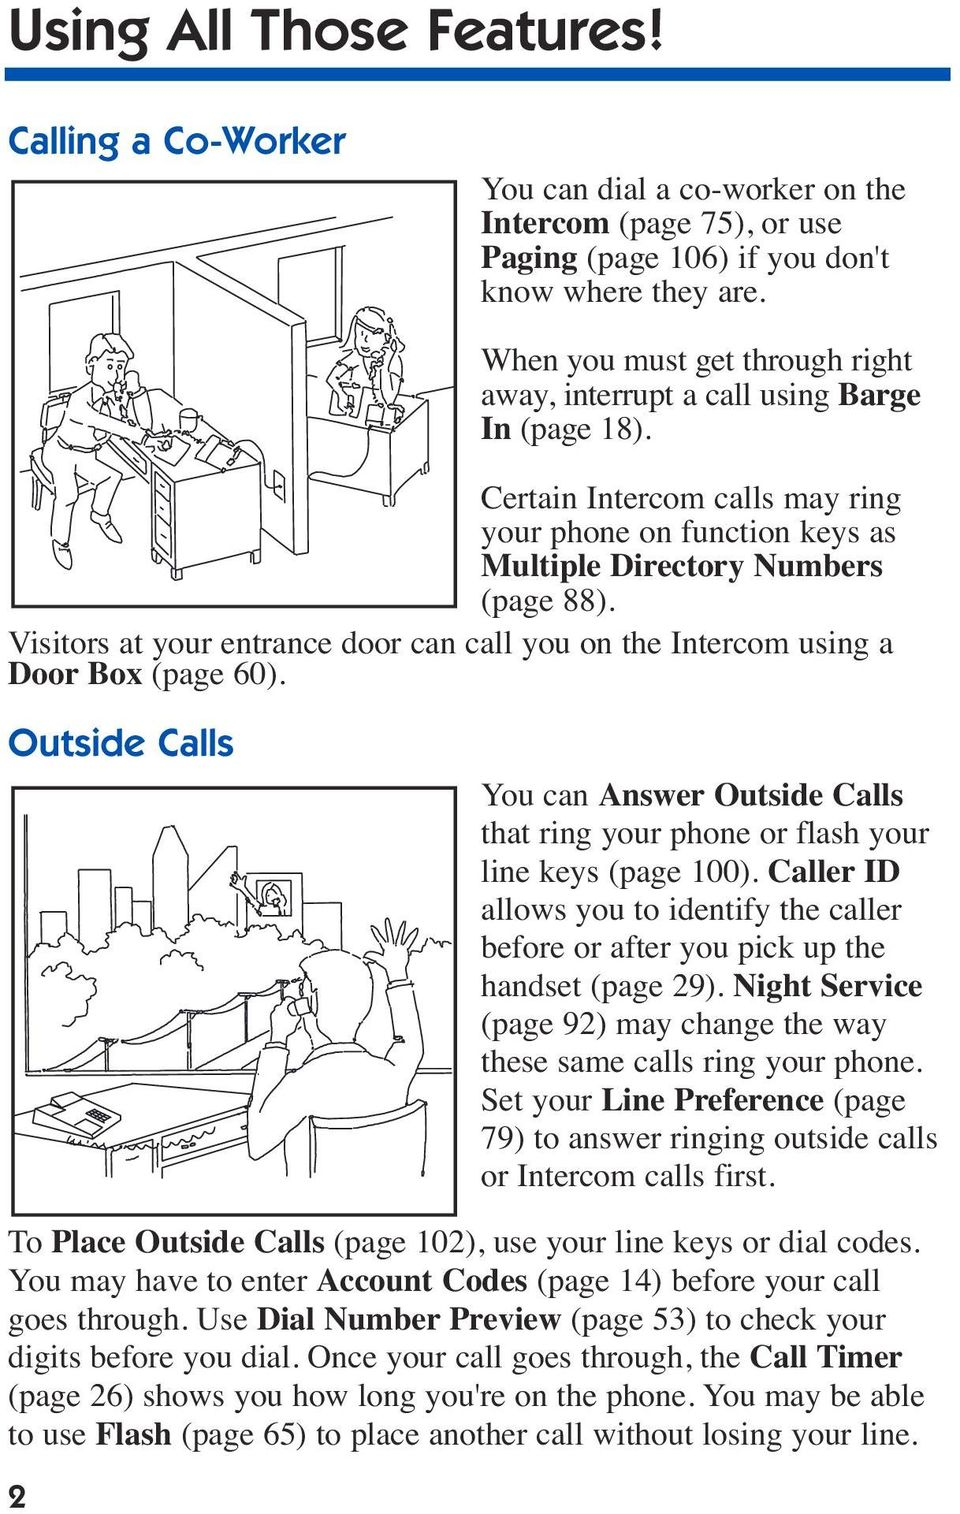 Visitors at your entrance door can call you on the Intercom using a Door Box (page 60). Outside Calls You can Answer Outside Calls that ring your phone or flash your line keys (page 100).